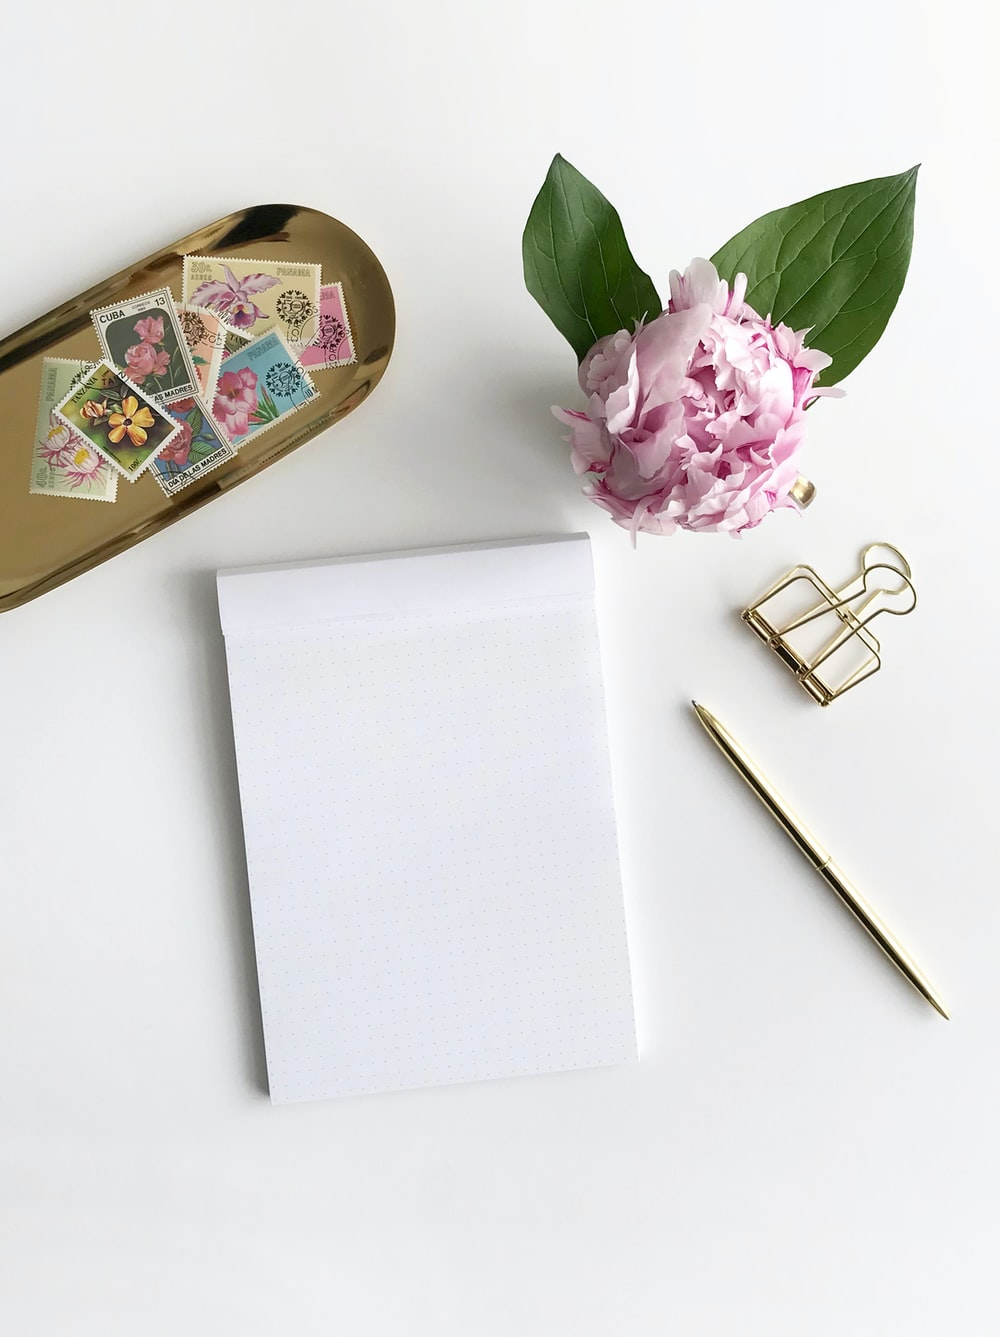 purple flower beside stamps and clip